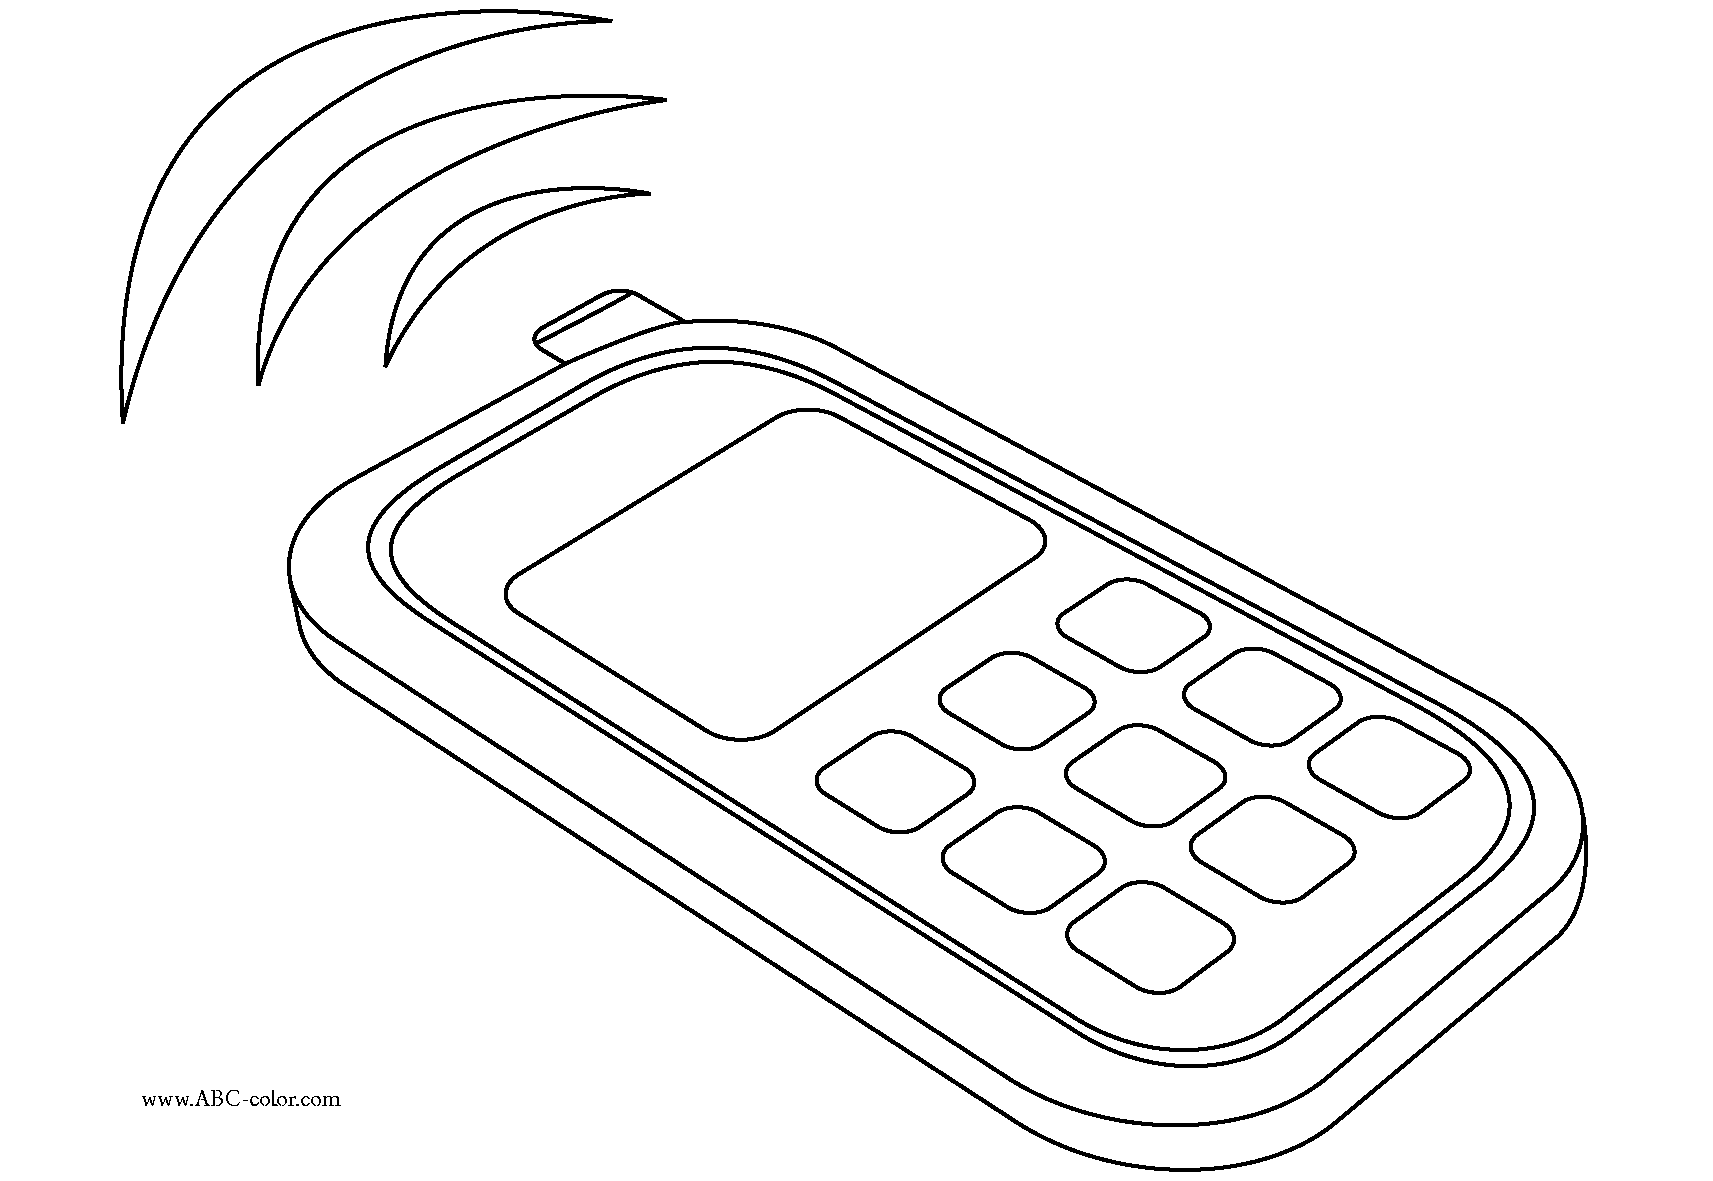 cell phone coloring pages beautiful coloring page frieze framing pages ultra cell coloring cell phone pages